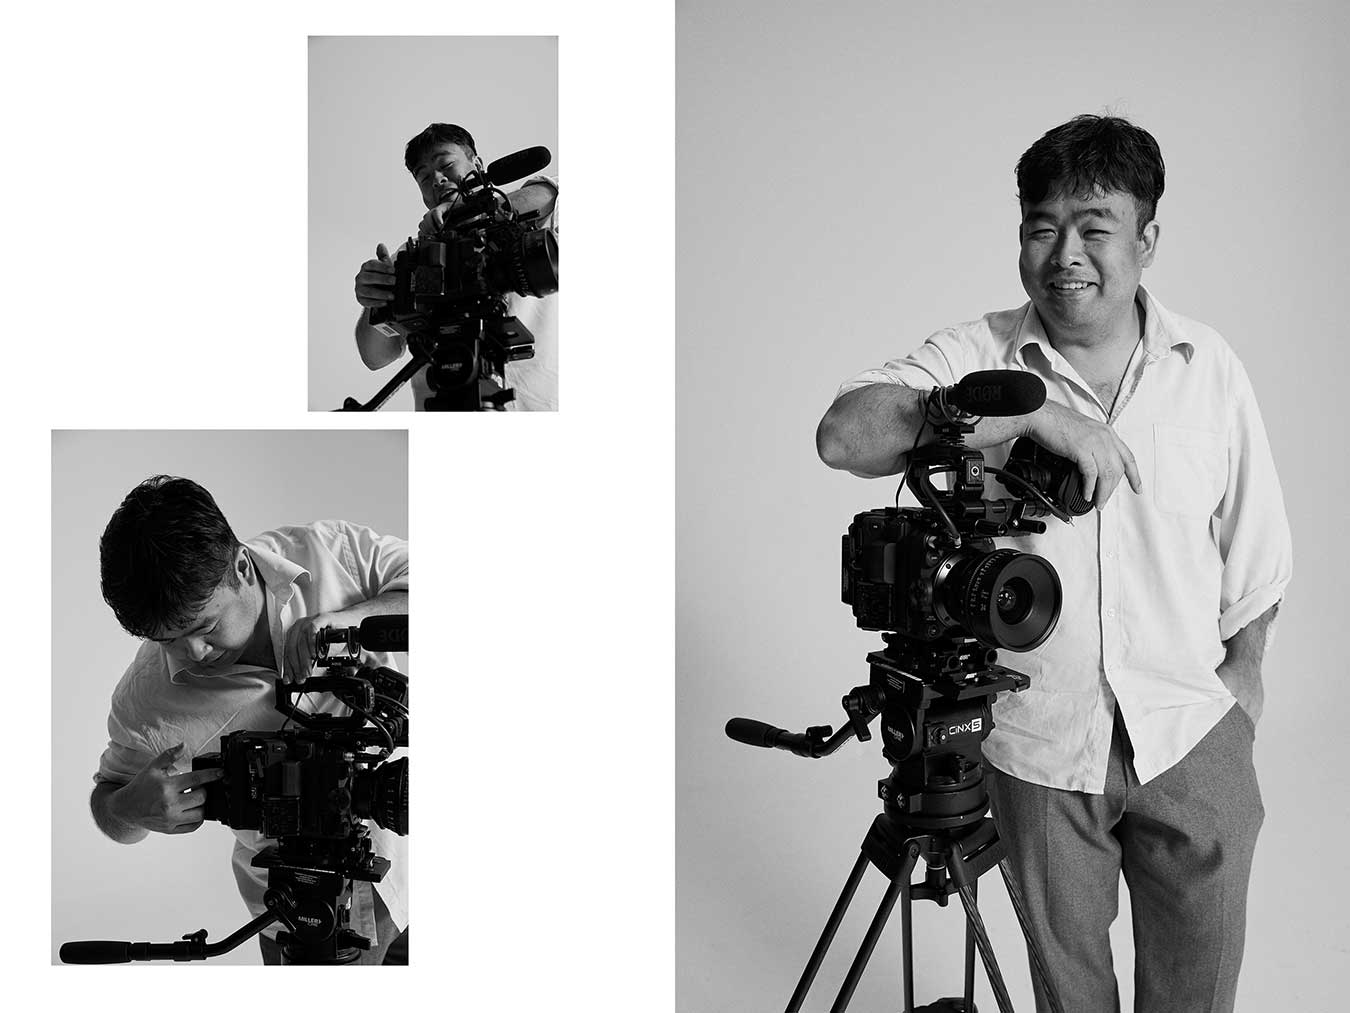 dave-tran-with-camera-gear-by-kristina-yenko